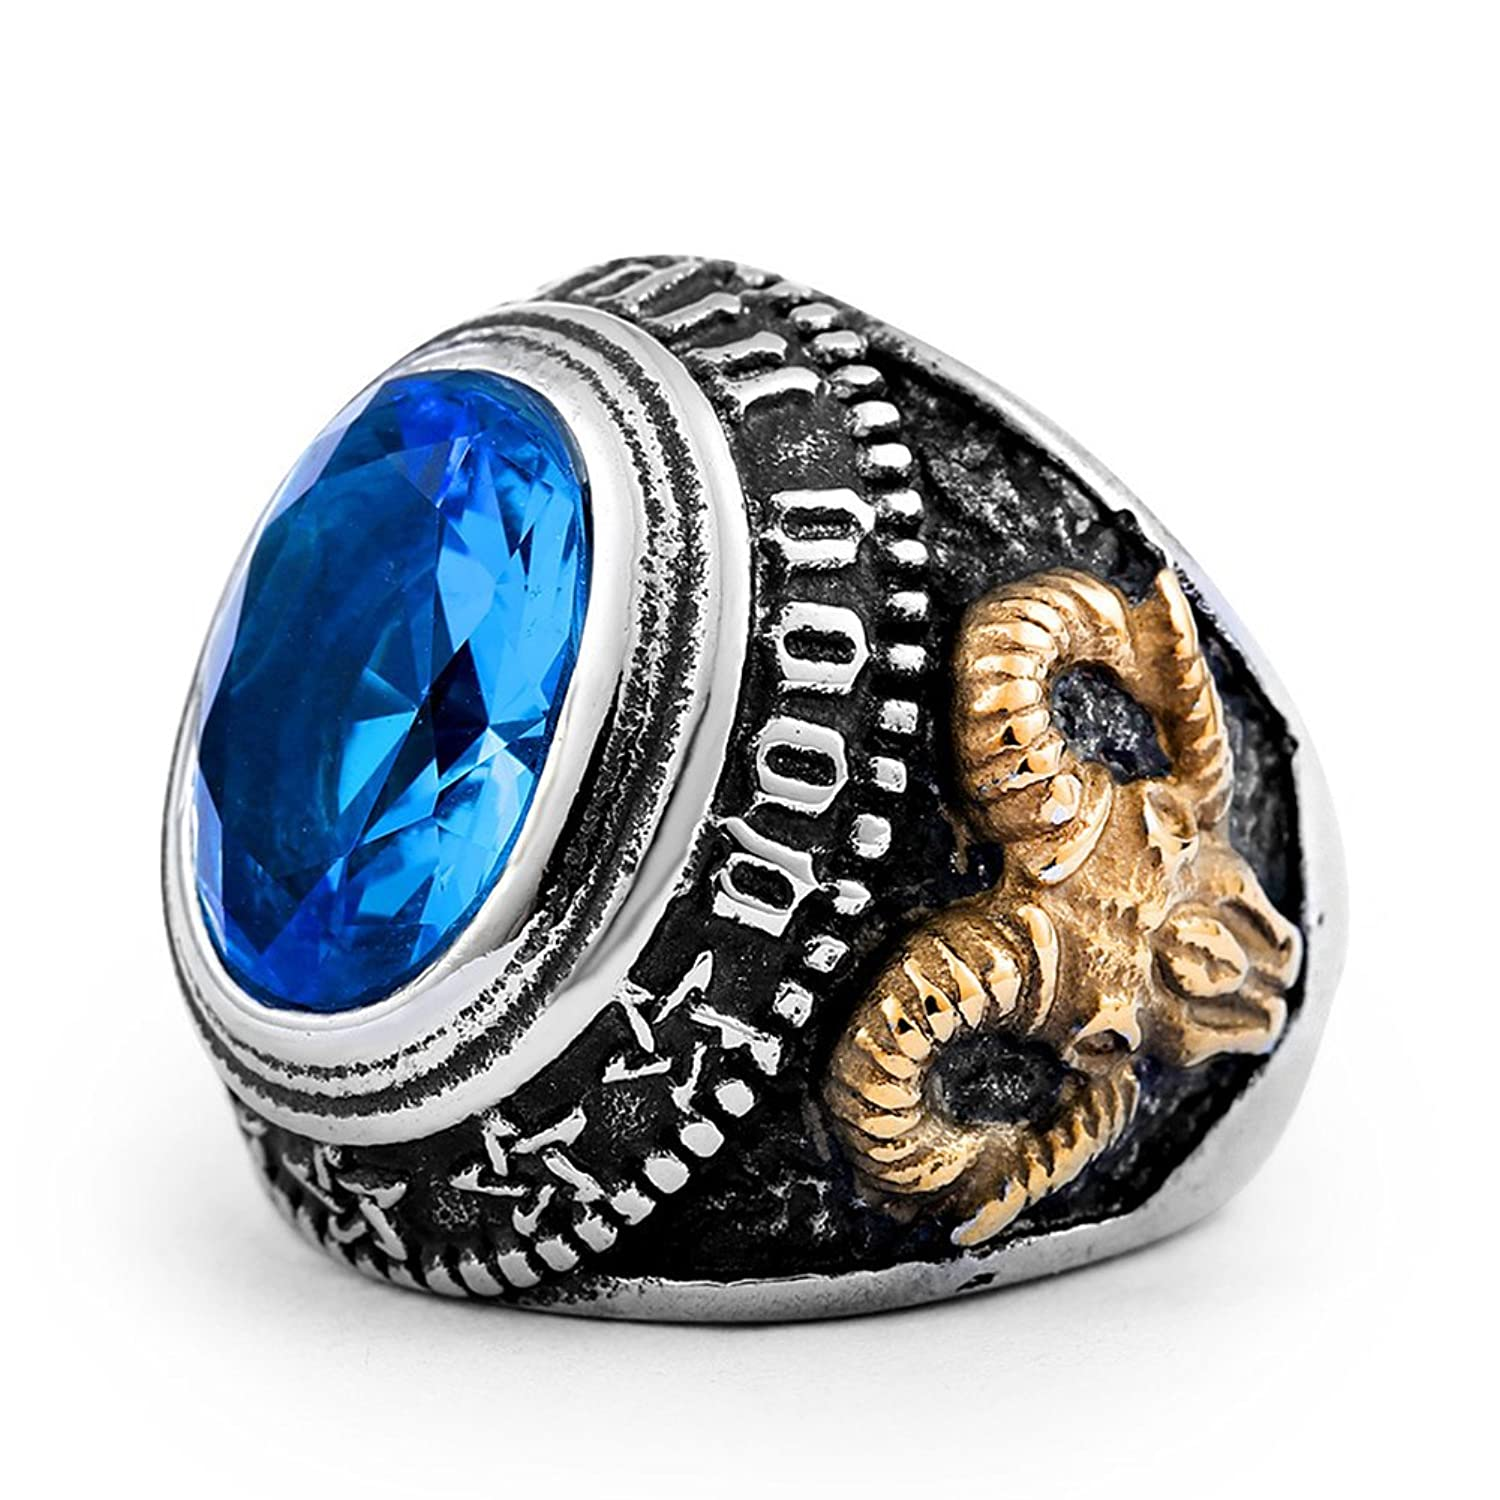 LILILEO Jewelry Titanium Steel Retro Gold Goat Skull Blue Zircon Masonic Ring For Men's Rings